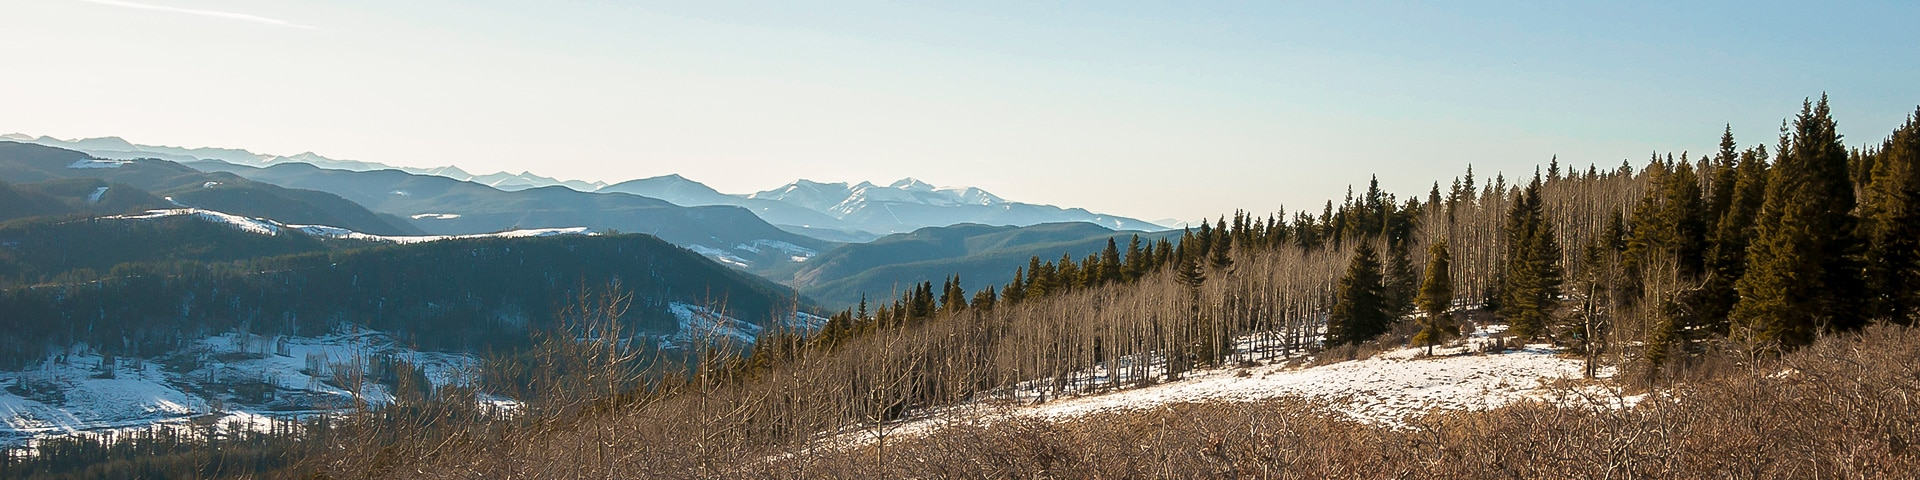 Panorama from the Mesa Butte hike in Bragg Creek, Kananaskis near Canmore